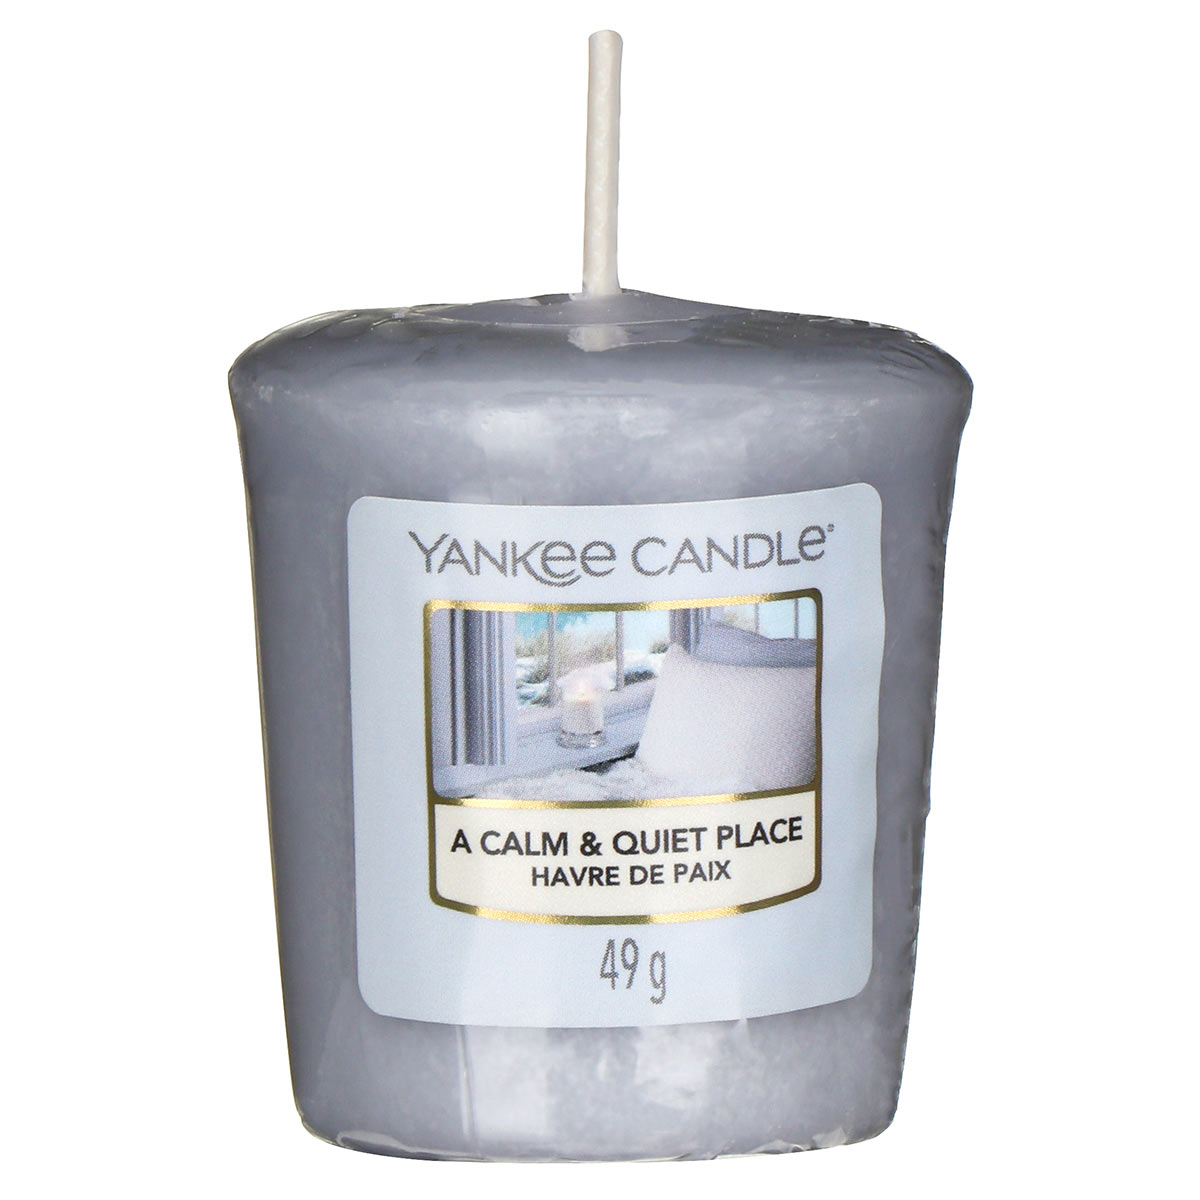 Yankee Candle A Calm & Quiet Place Sampler Votive Candle